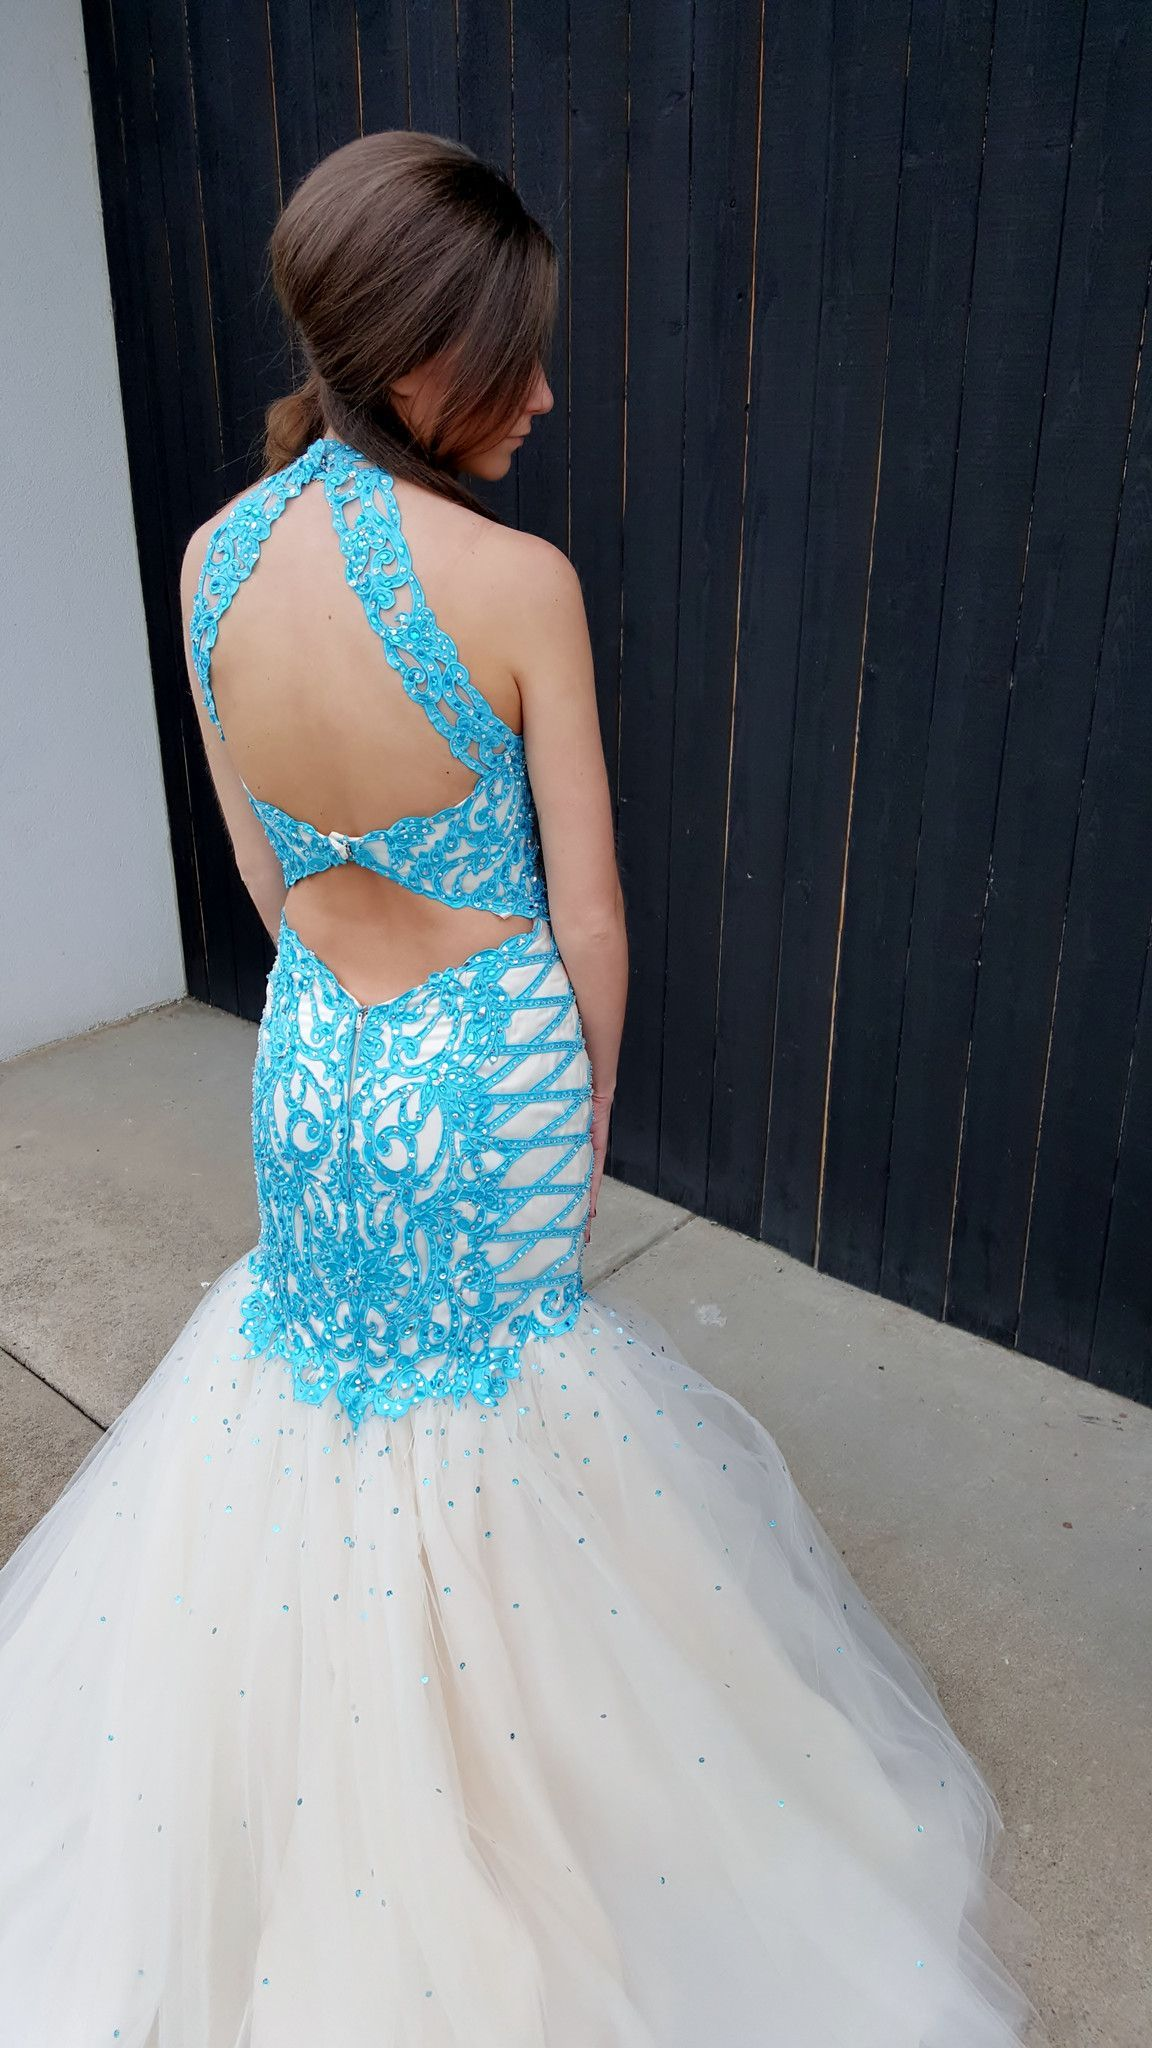 High Neck Low Back Prom Dress | My style | Pinterest | Prom ...